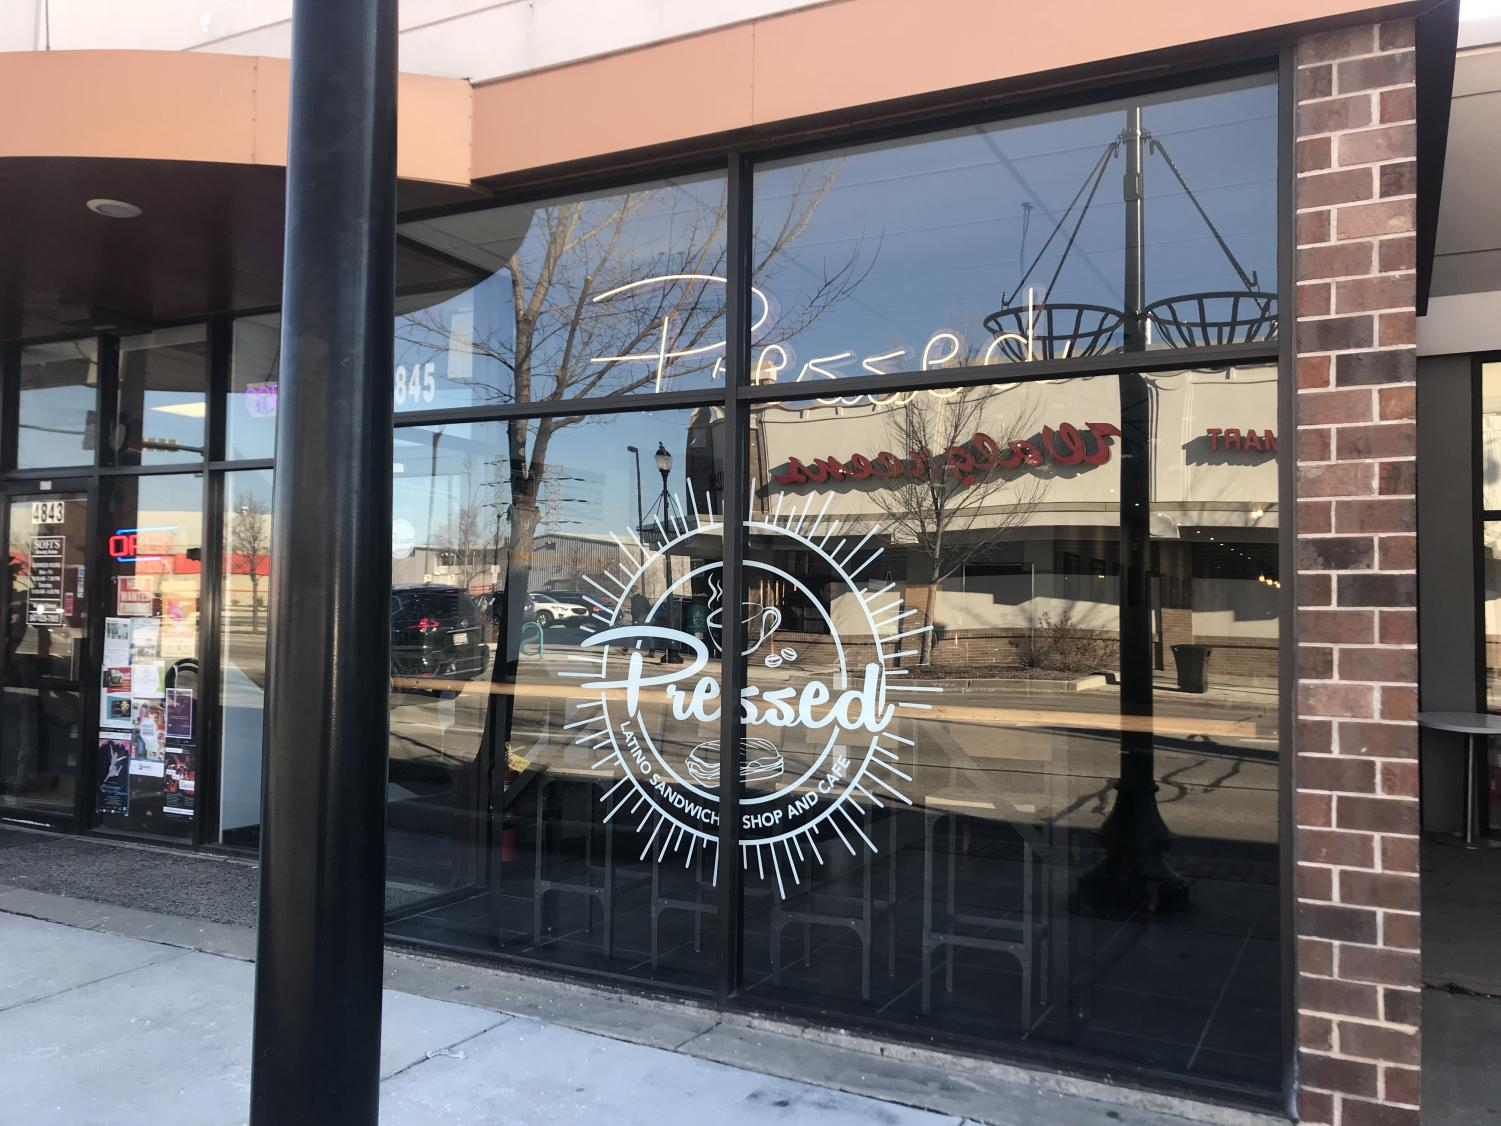 Pressed is a brand new cafe and sandwich shop located on Oakton St.